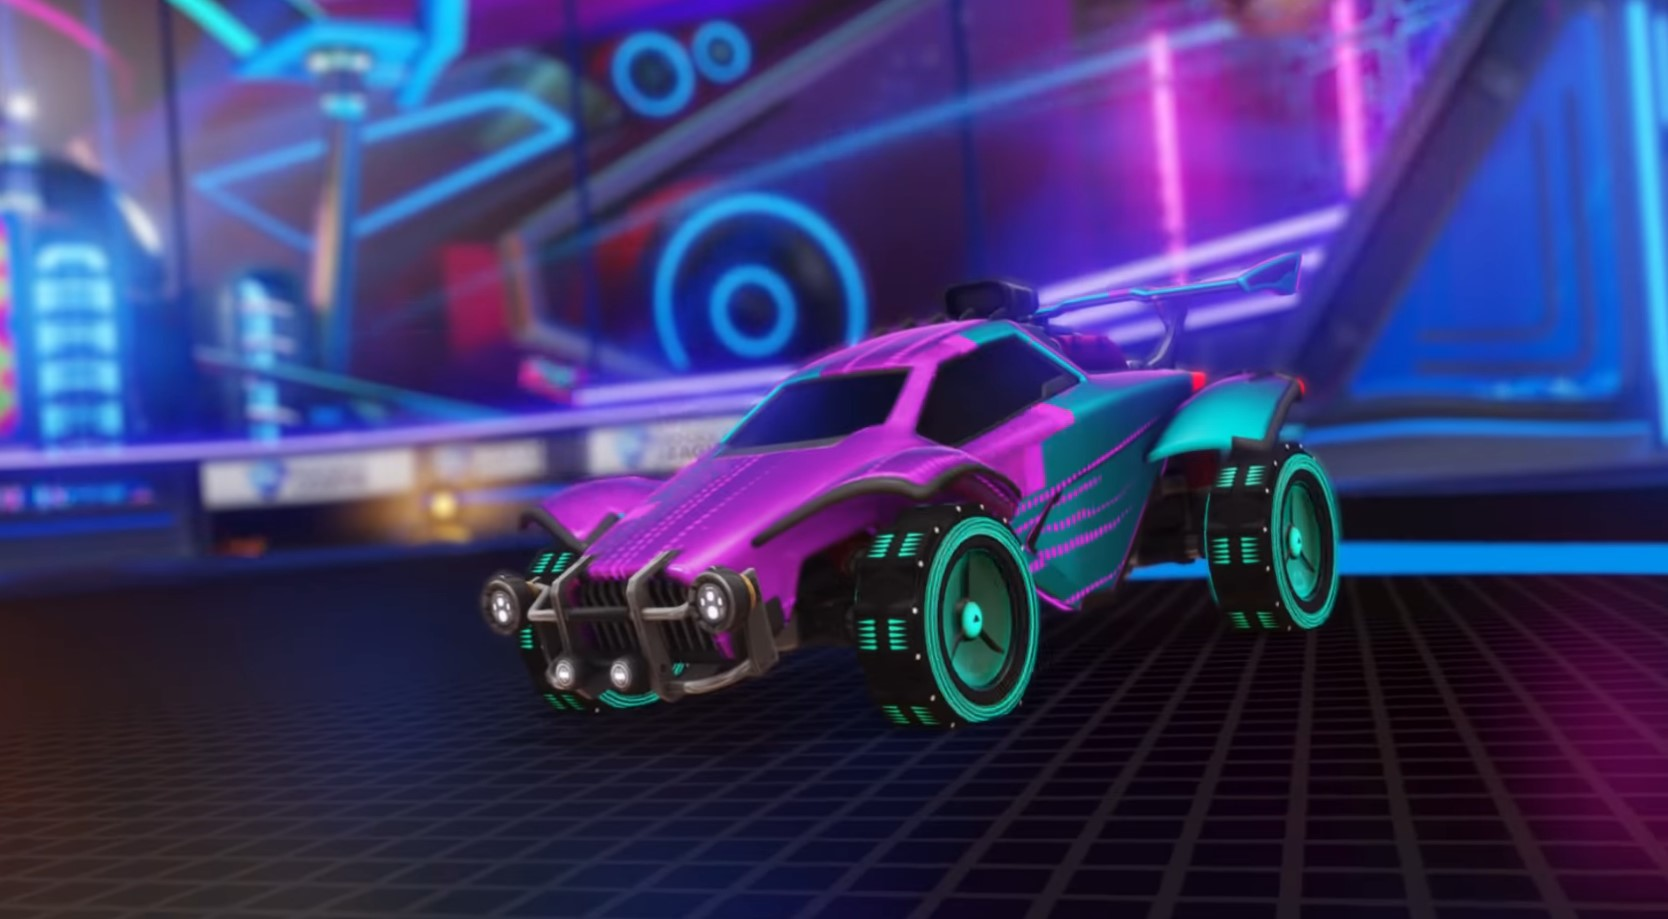 Get groovy with Rocket League Season 2 this December